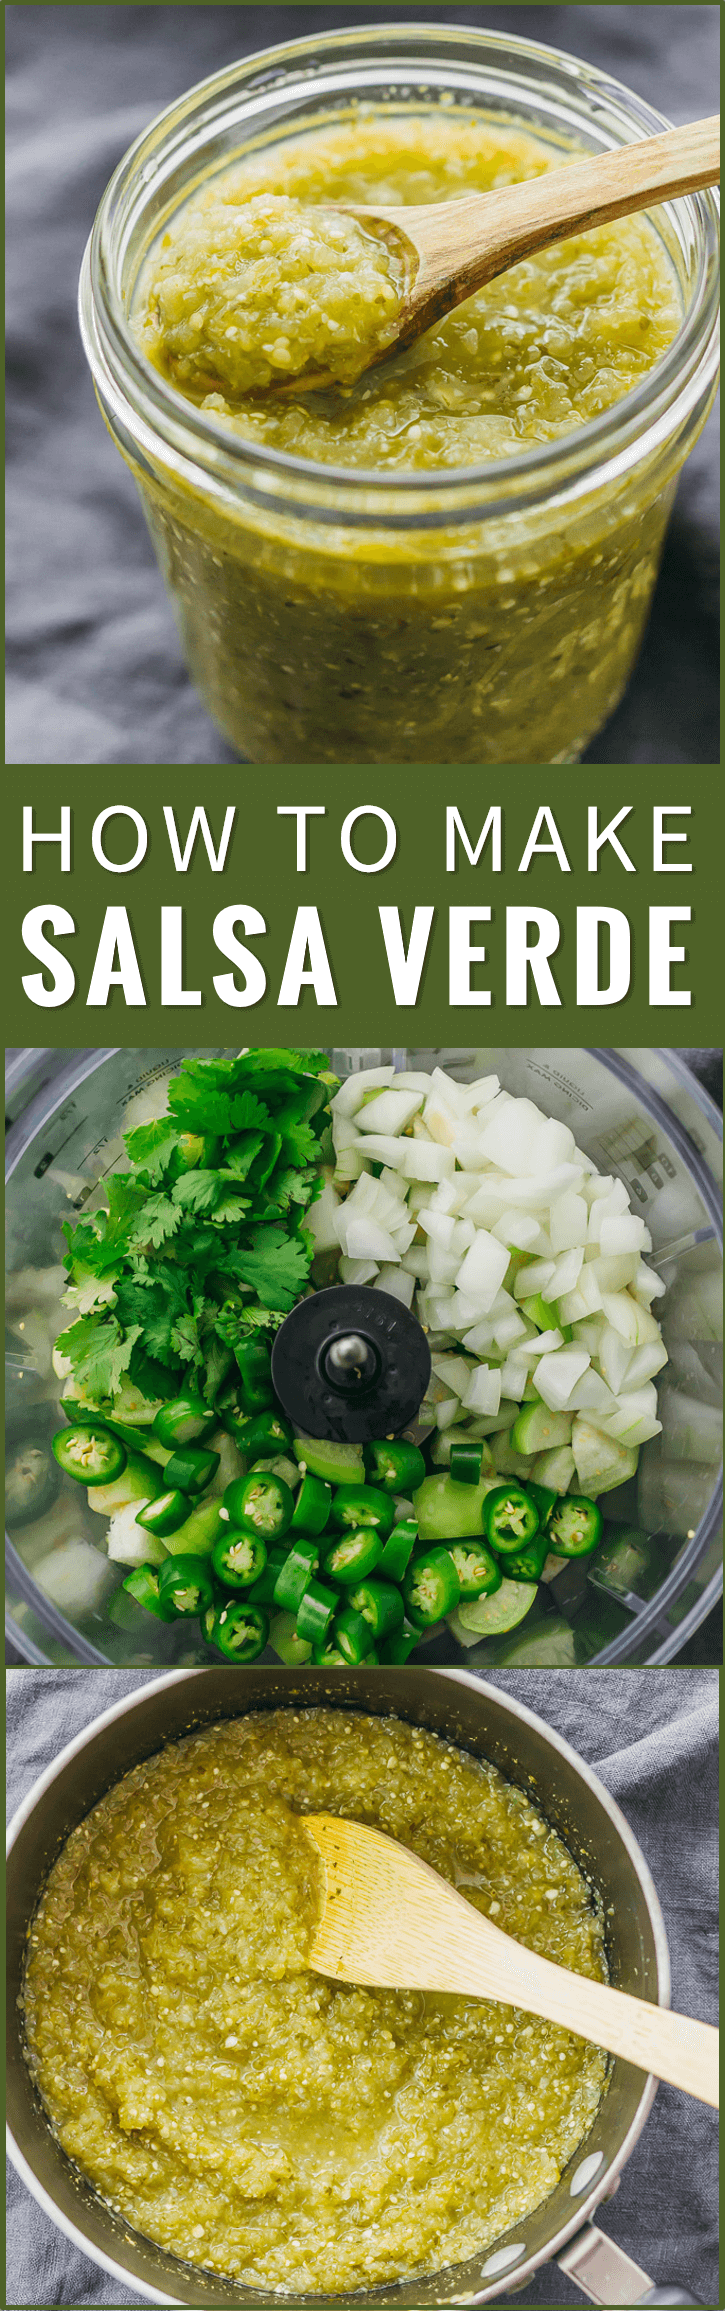 Here's a step-by-step foolproof recipe on how to make salsa verde! It's so easy to make this at home using pureed tomatillos, serrano peppers, onion, cilantro, and lime. tomatillo sauce, tacos, enchiladas, mexicana, roasted, authentic, creamy, receta, spicy, green, dip, chili, sauce, how to make, vegetarian, vegan, uses, tomato, dinner, fresh, hot, best, dishes, cilantro, mild, simple, gluten free, low carb, lime juice, onions, garlic clove, mexico, water, food processor